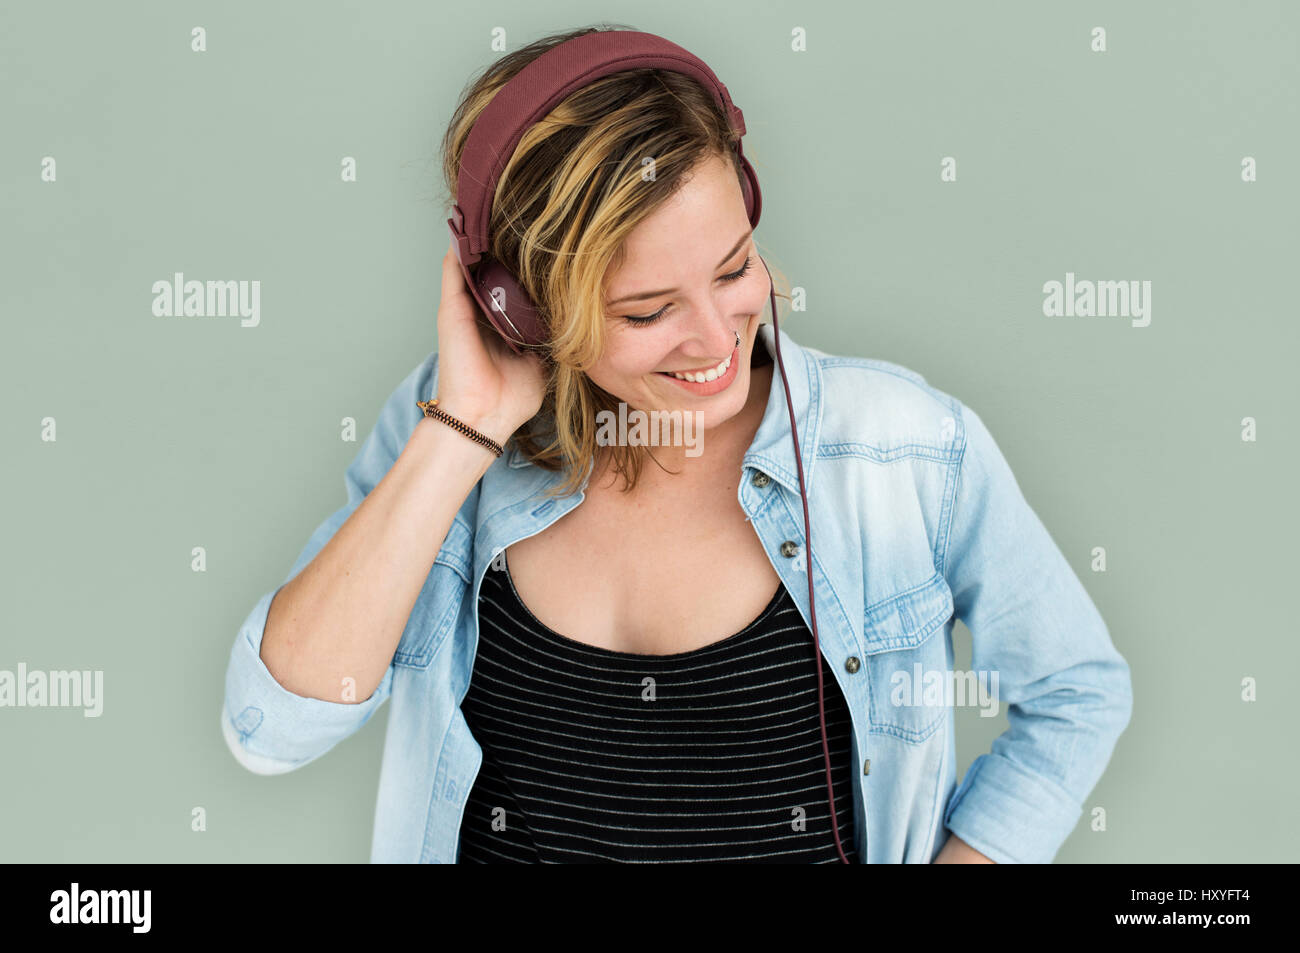 Young Lady Embarassed Concept Studio Photo Stock